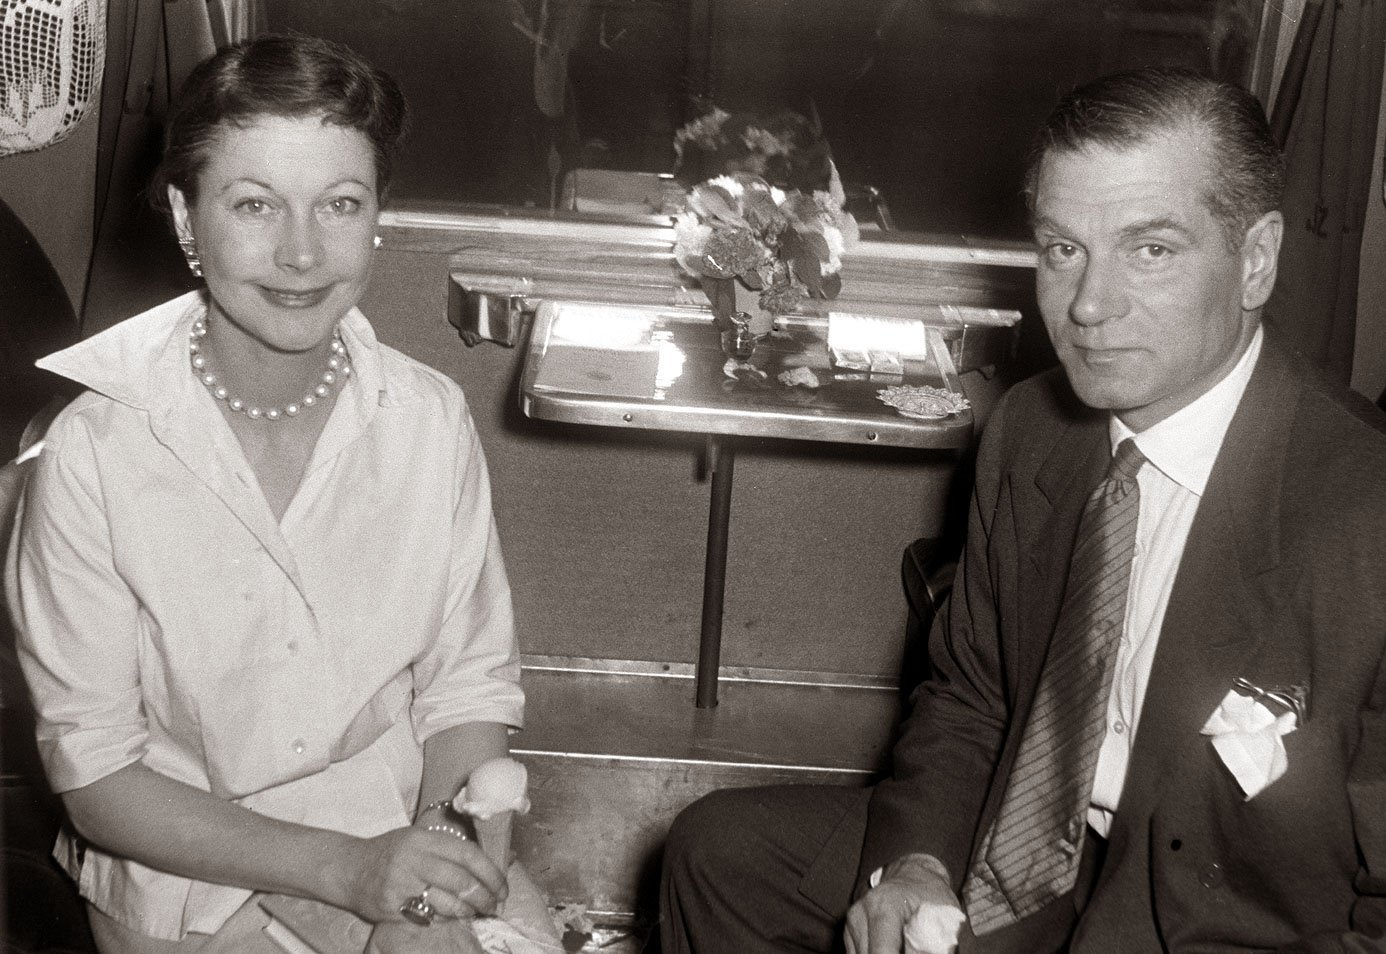 ivien Leigh and Laurence Olivier on a train in Maribor, 1957 | Photo: Wikimedia Commons Images